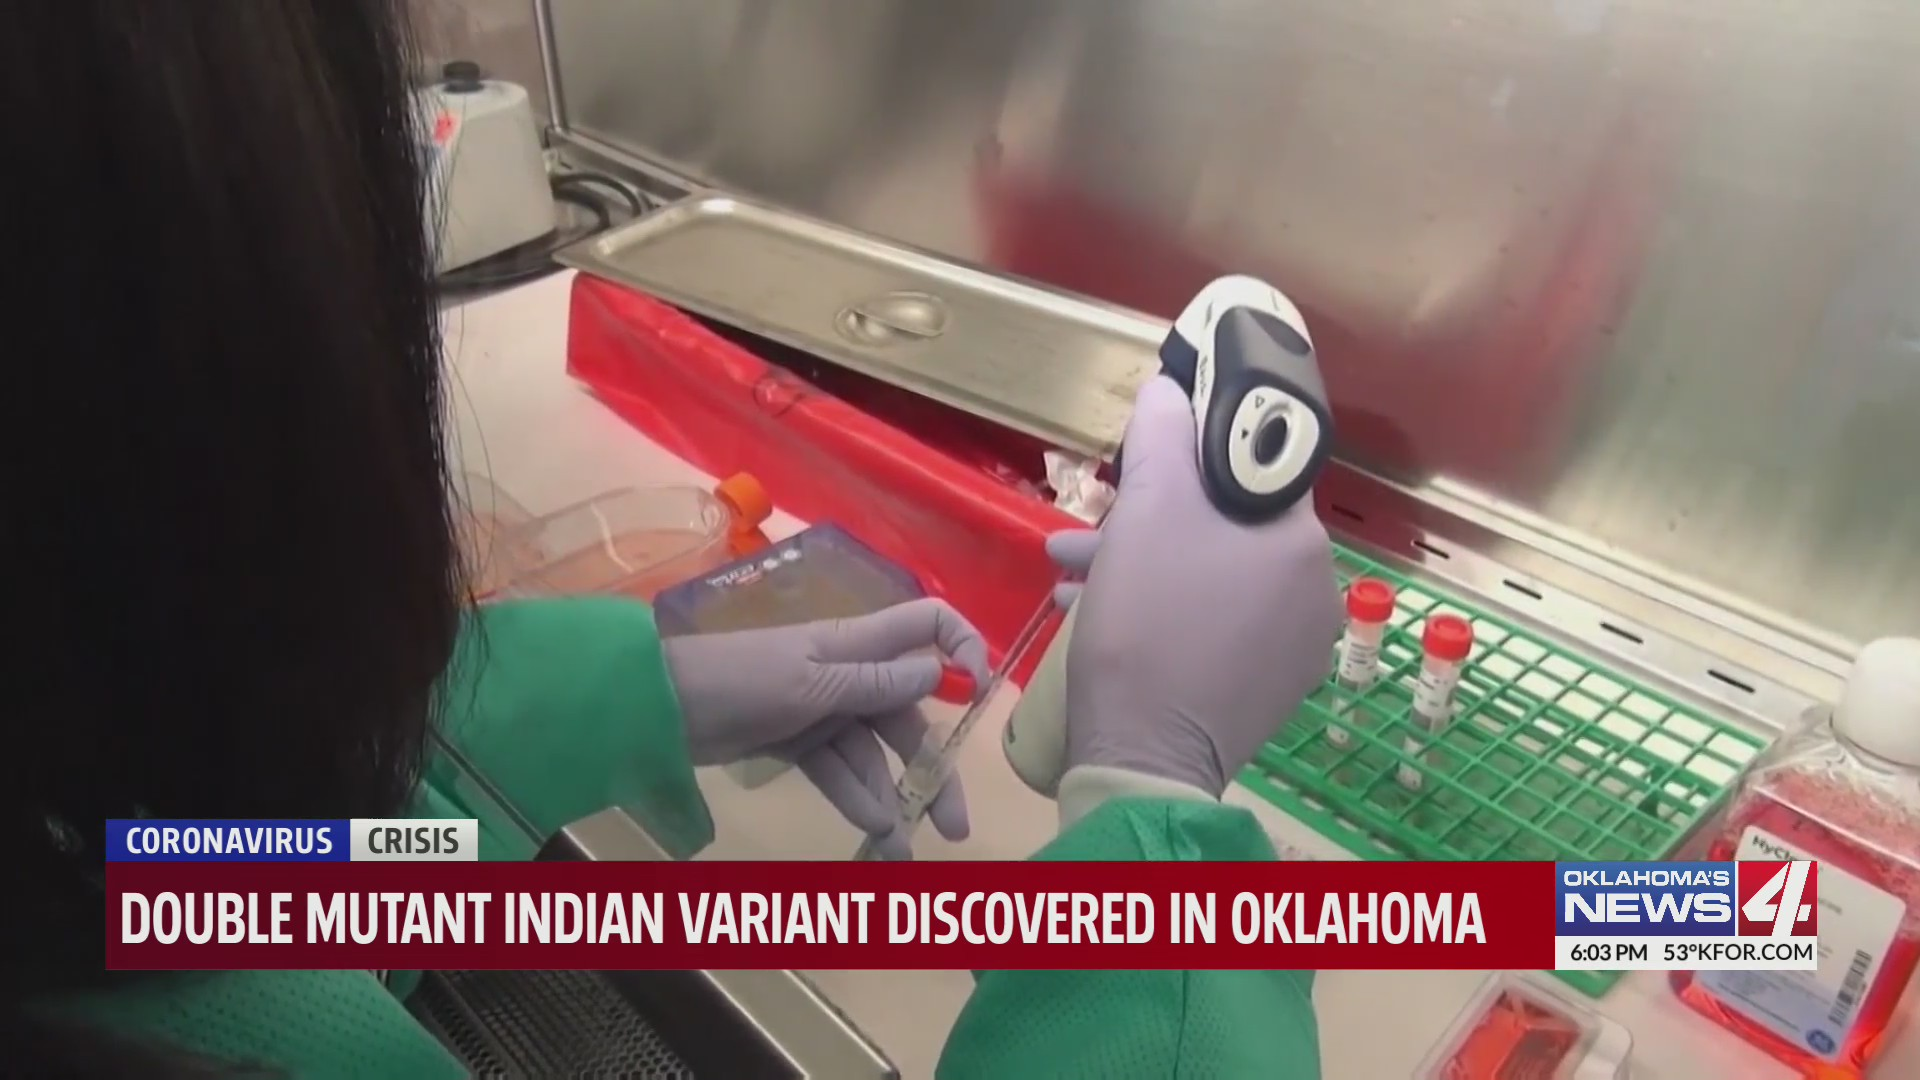 All COVID-19 variants recorded in Oklahoma, health leaders say